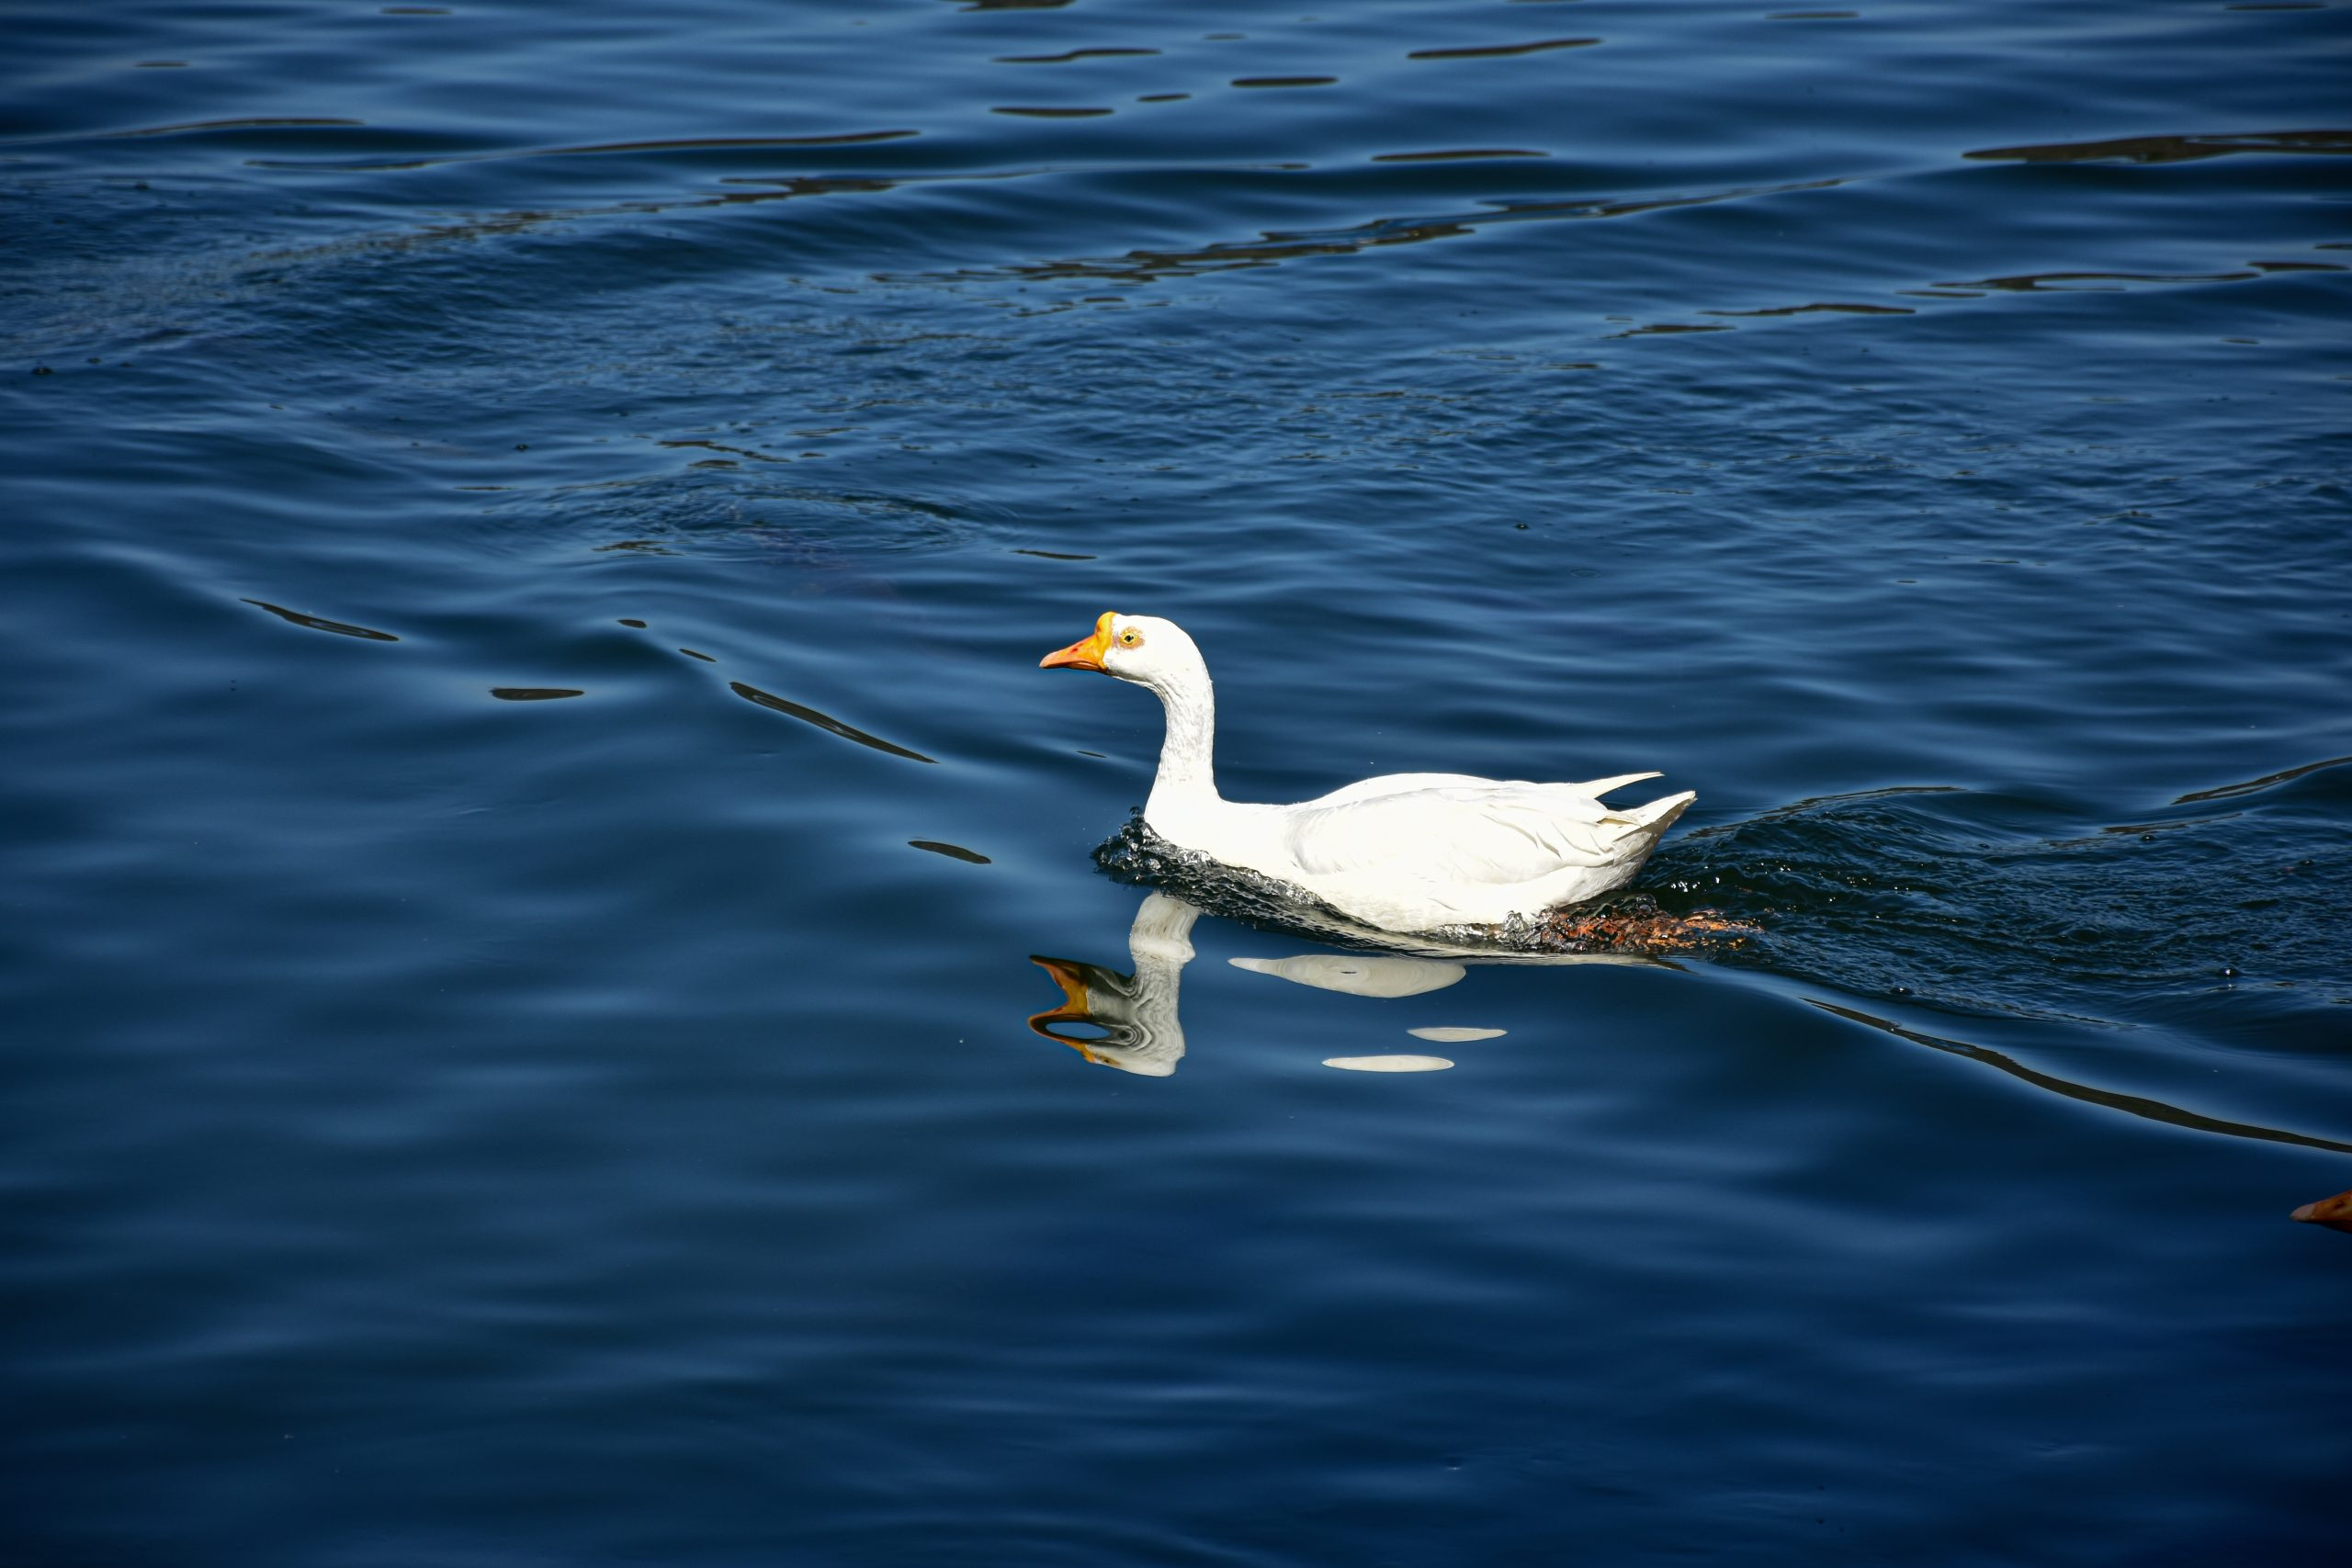 a duck swimming in a lake